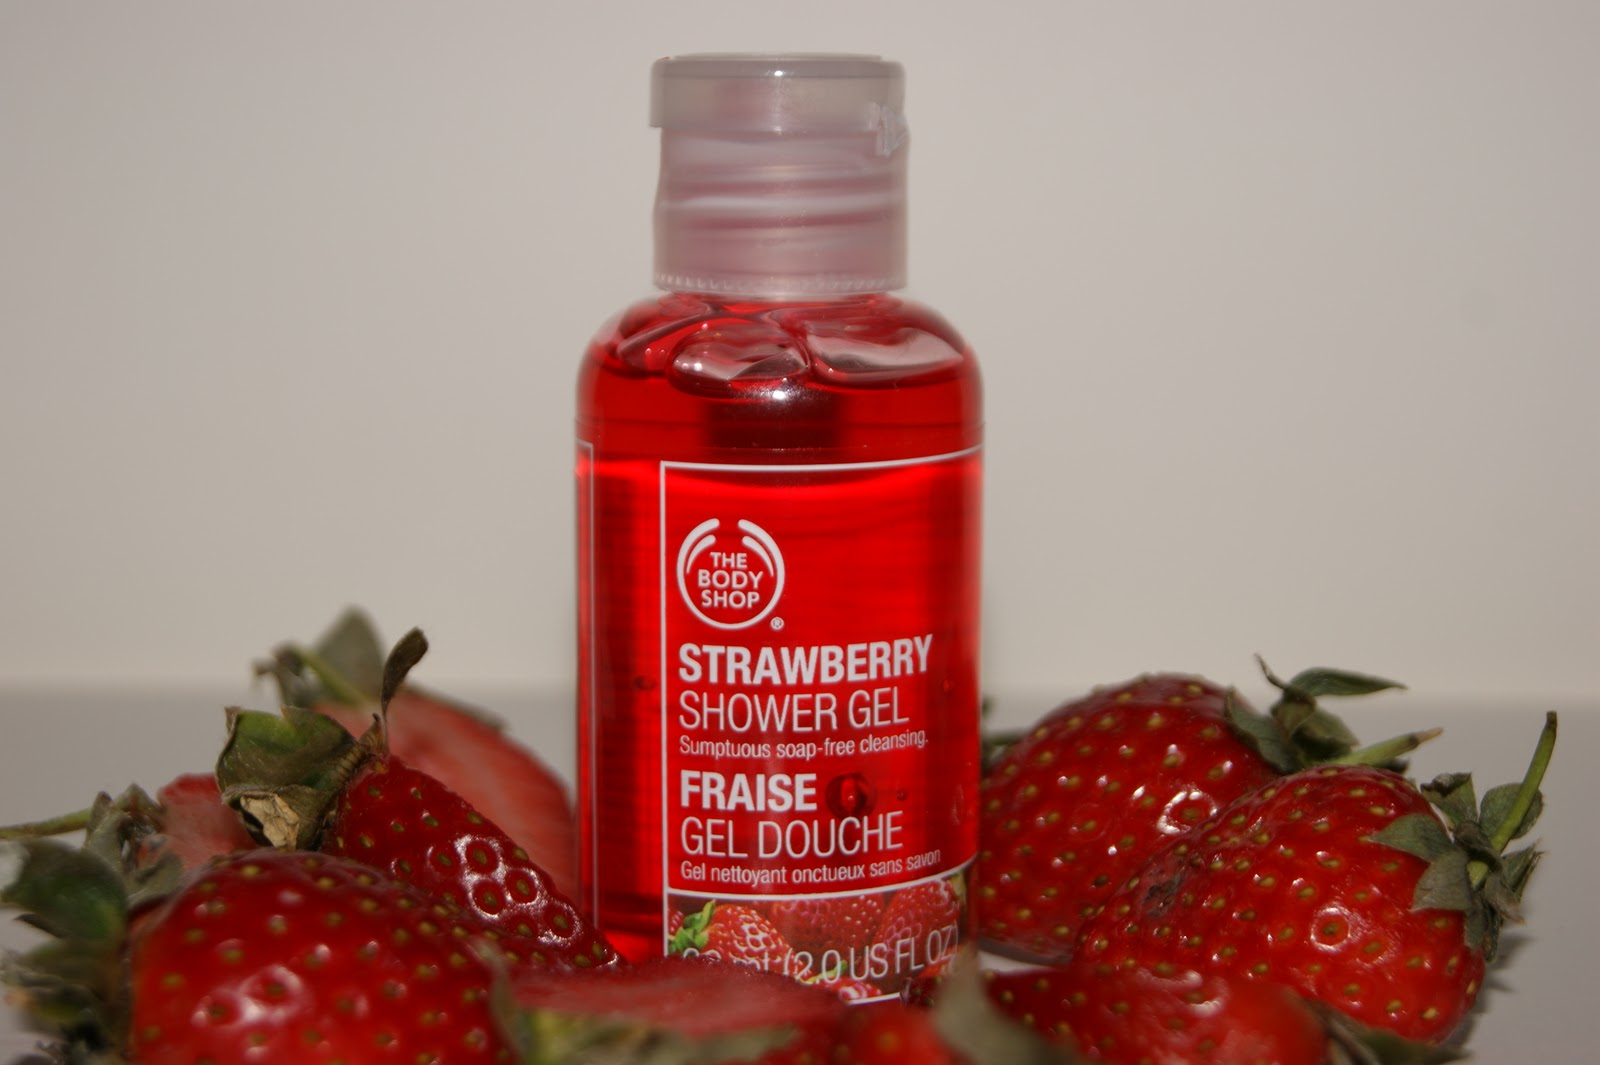 The Body Shop Strawberry Shower Gel Review | The Sunday Girl